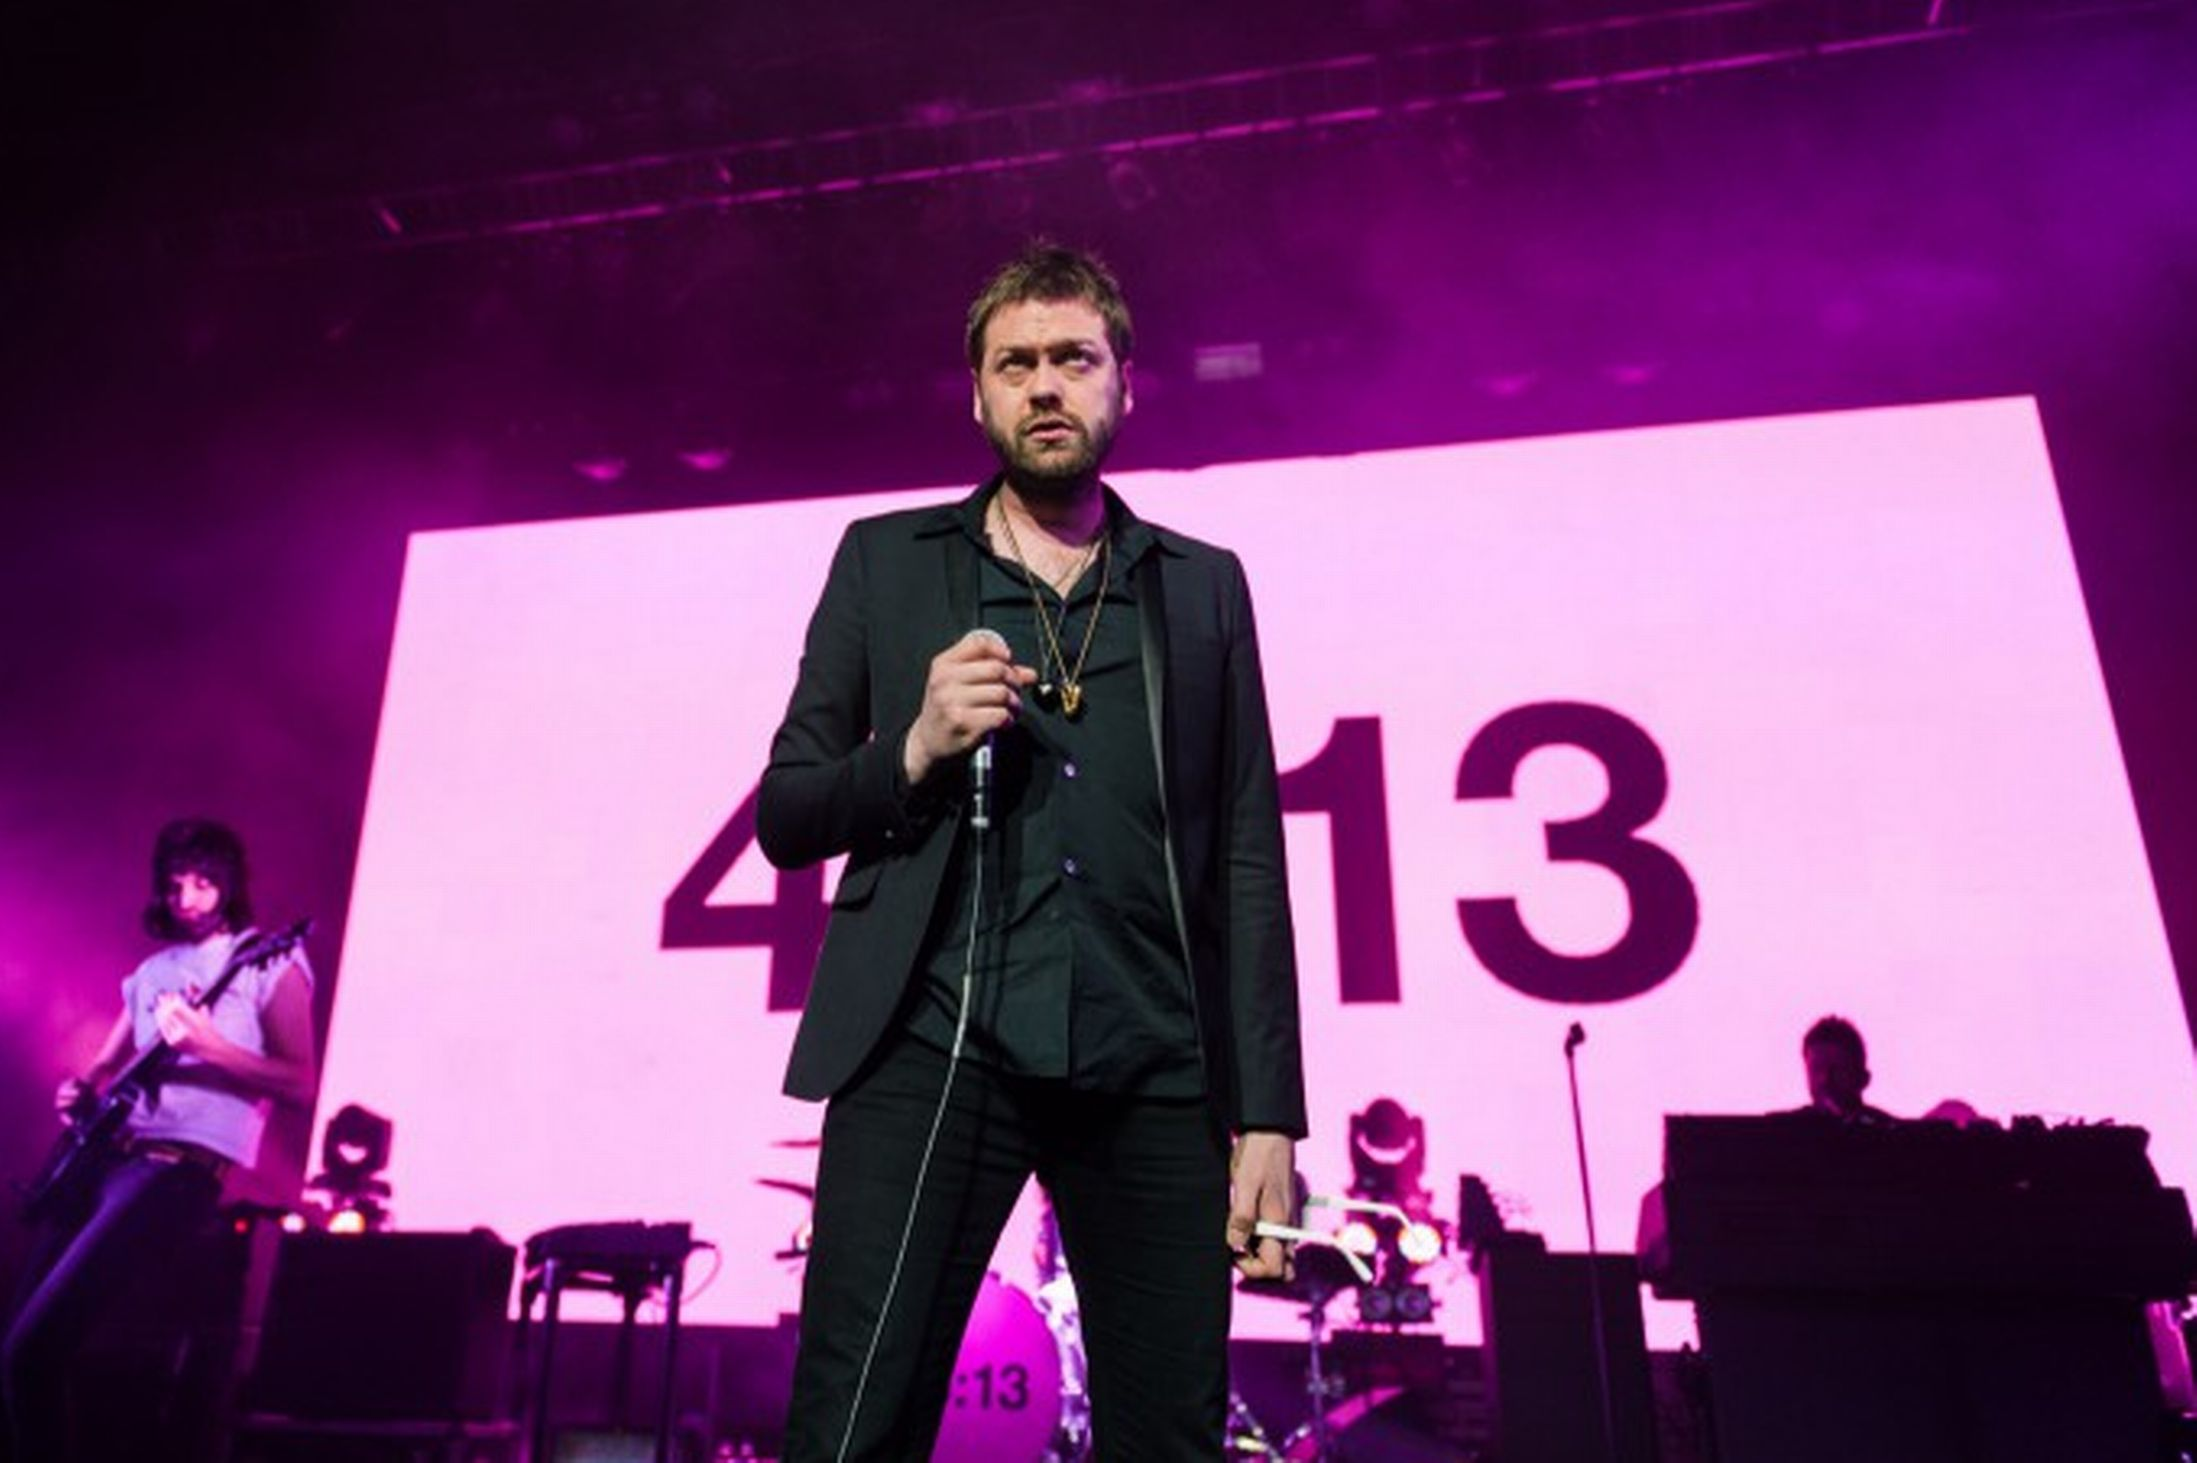 Glastonbury headliners Kasabian announce UK tour with Maccabees as supporting act